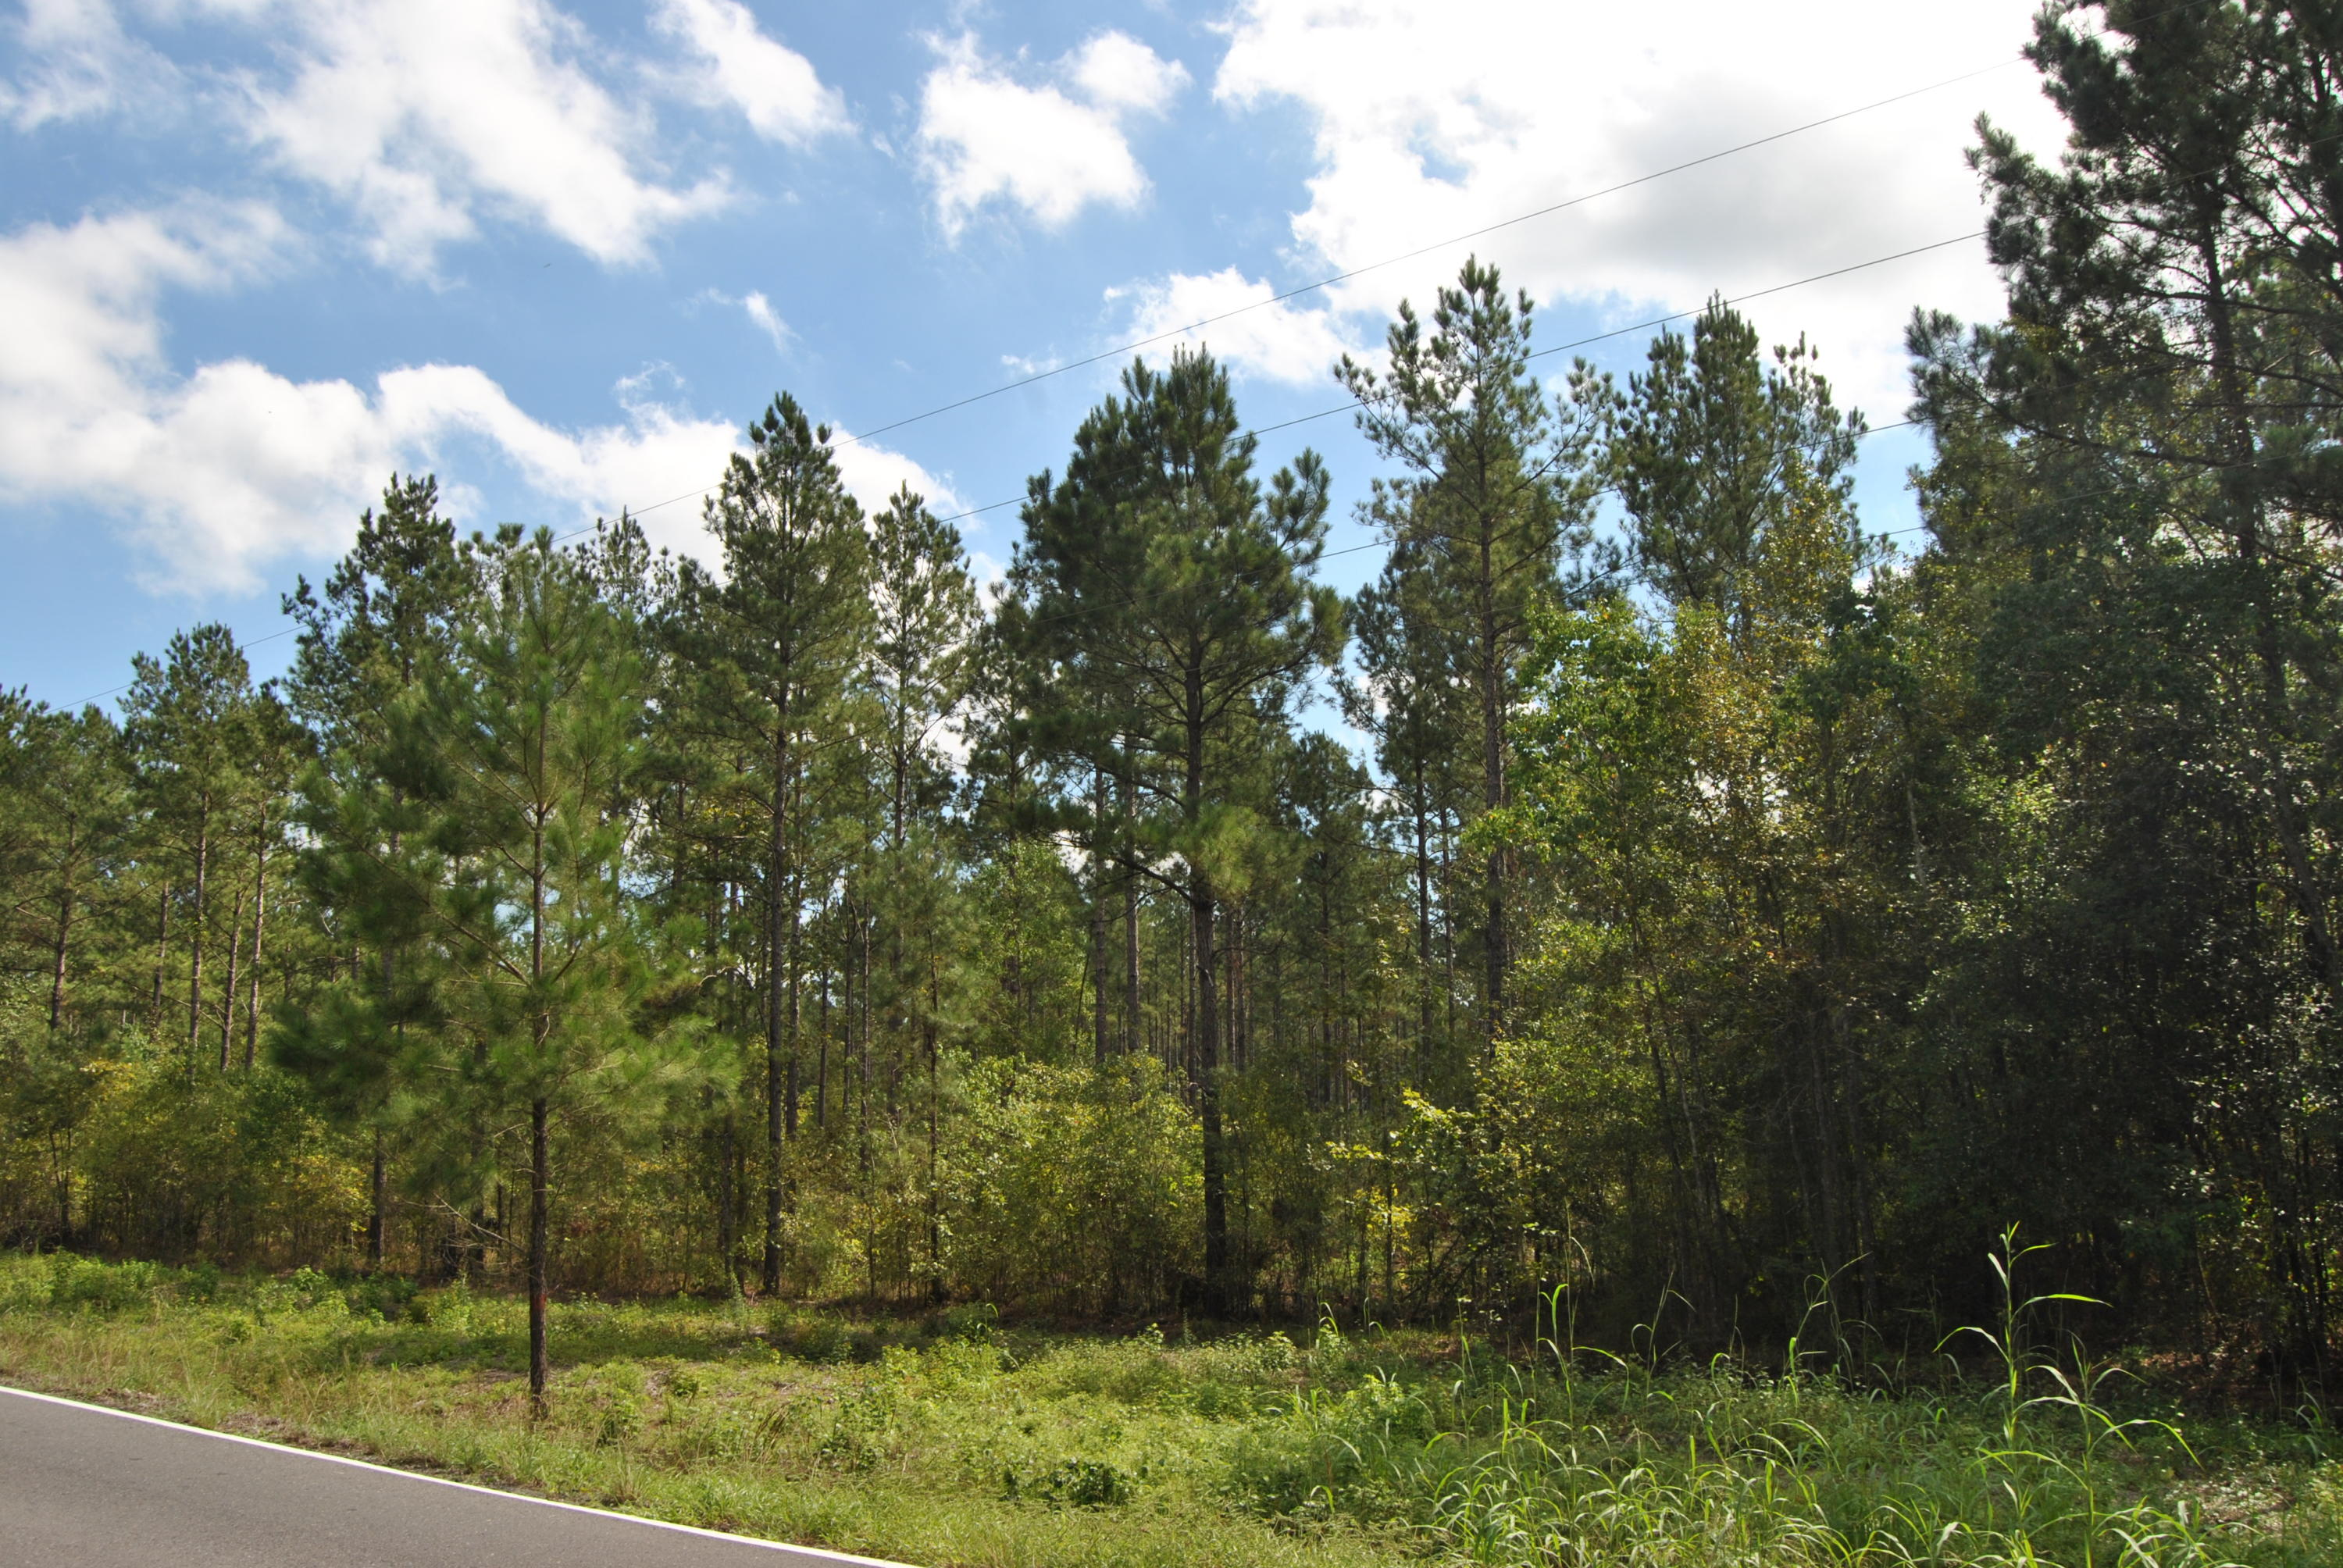 Kinder land for sale,  Hwy 383, Kinder LA - $32,000